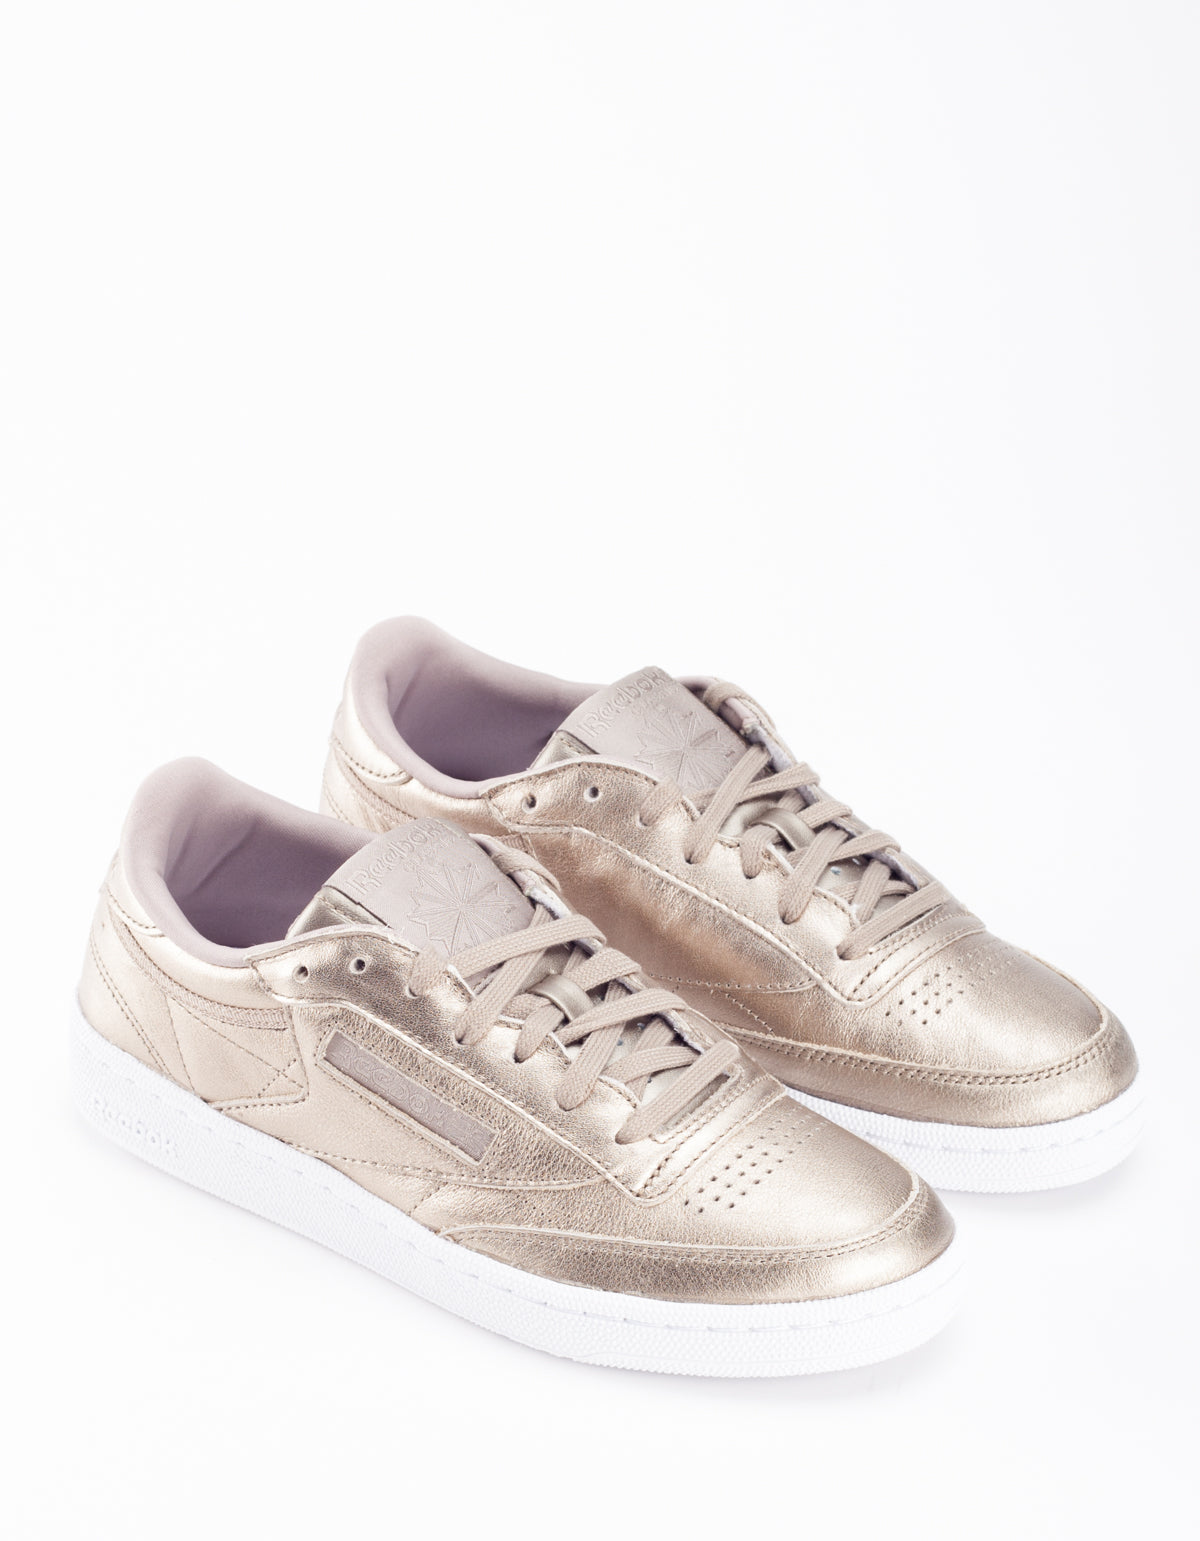 Reebok Club C 85 Melted Metal Pearl Metallic Grey Gold White